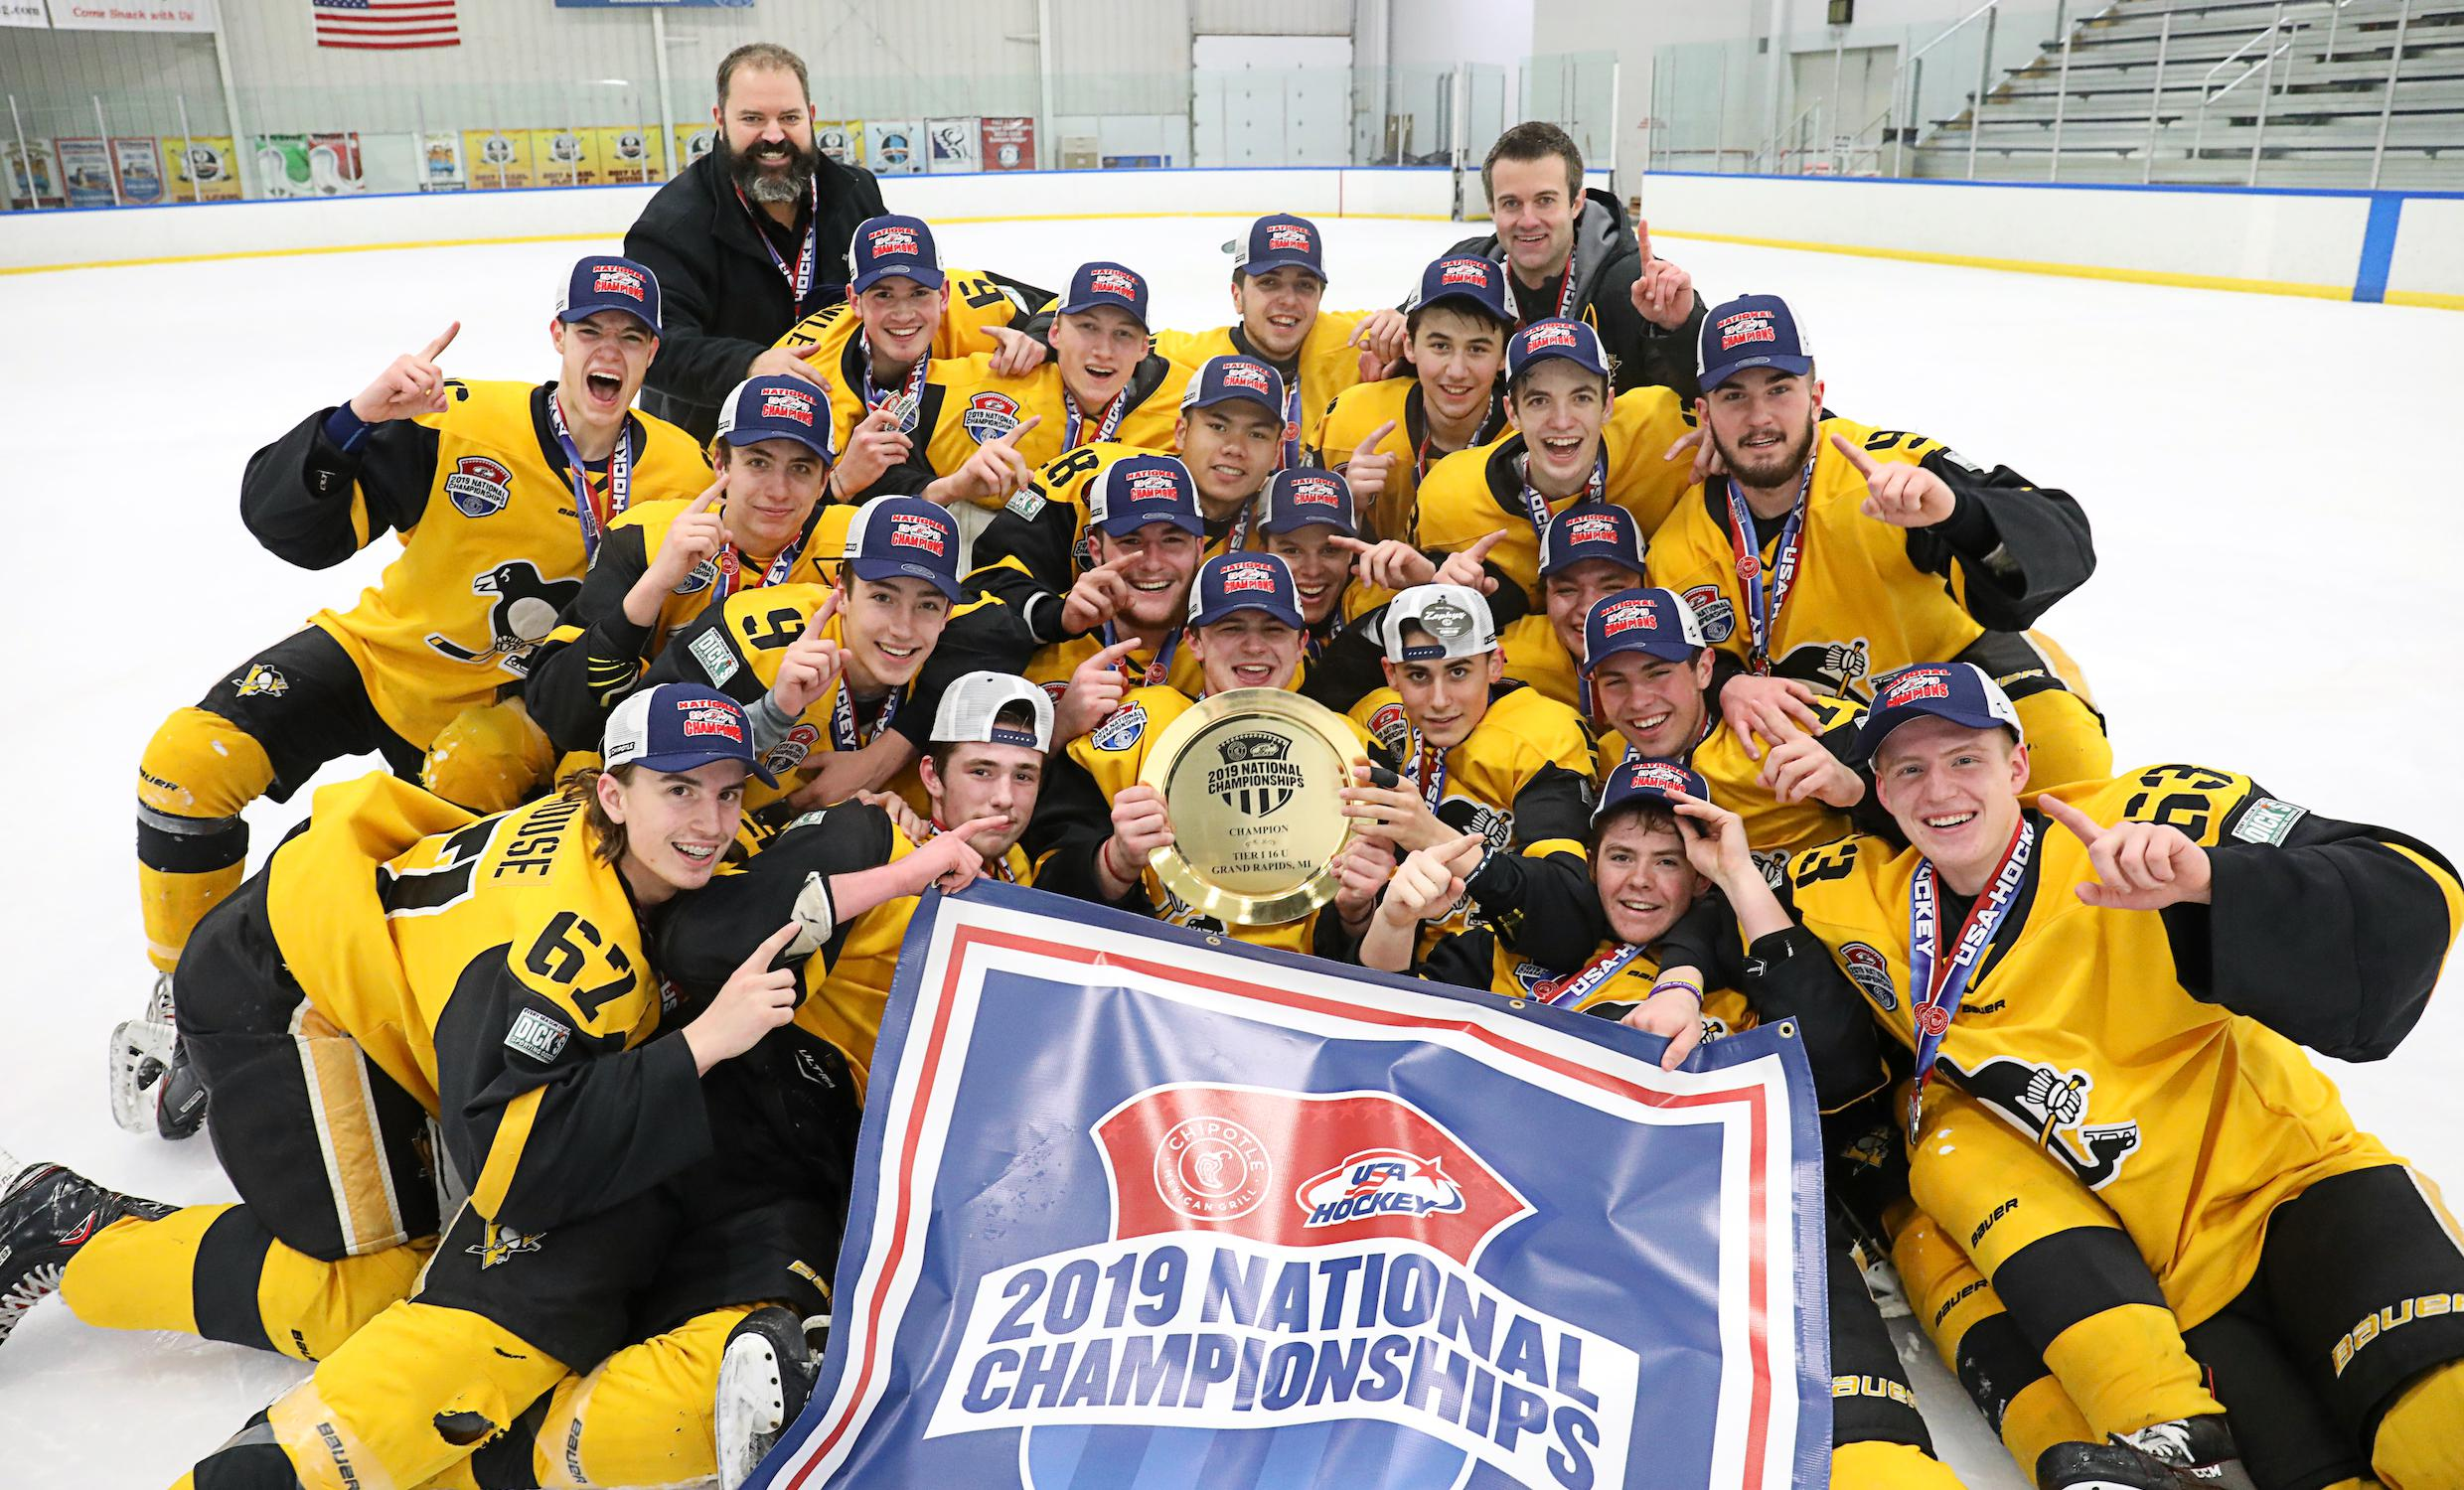 USA Hockey Youth Tier 1 Nationals Preview